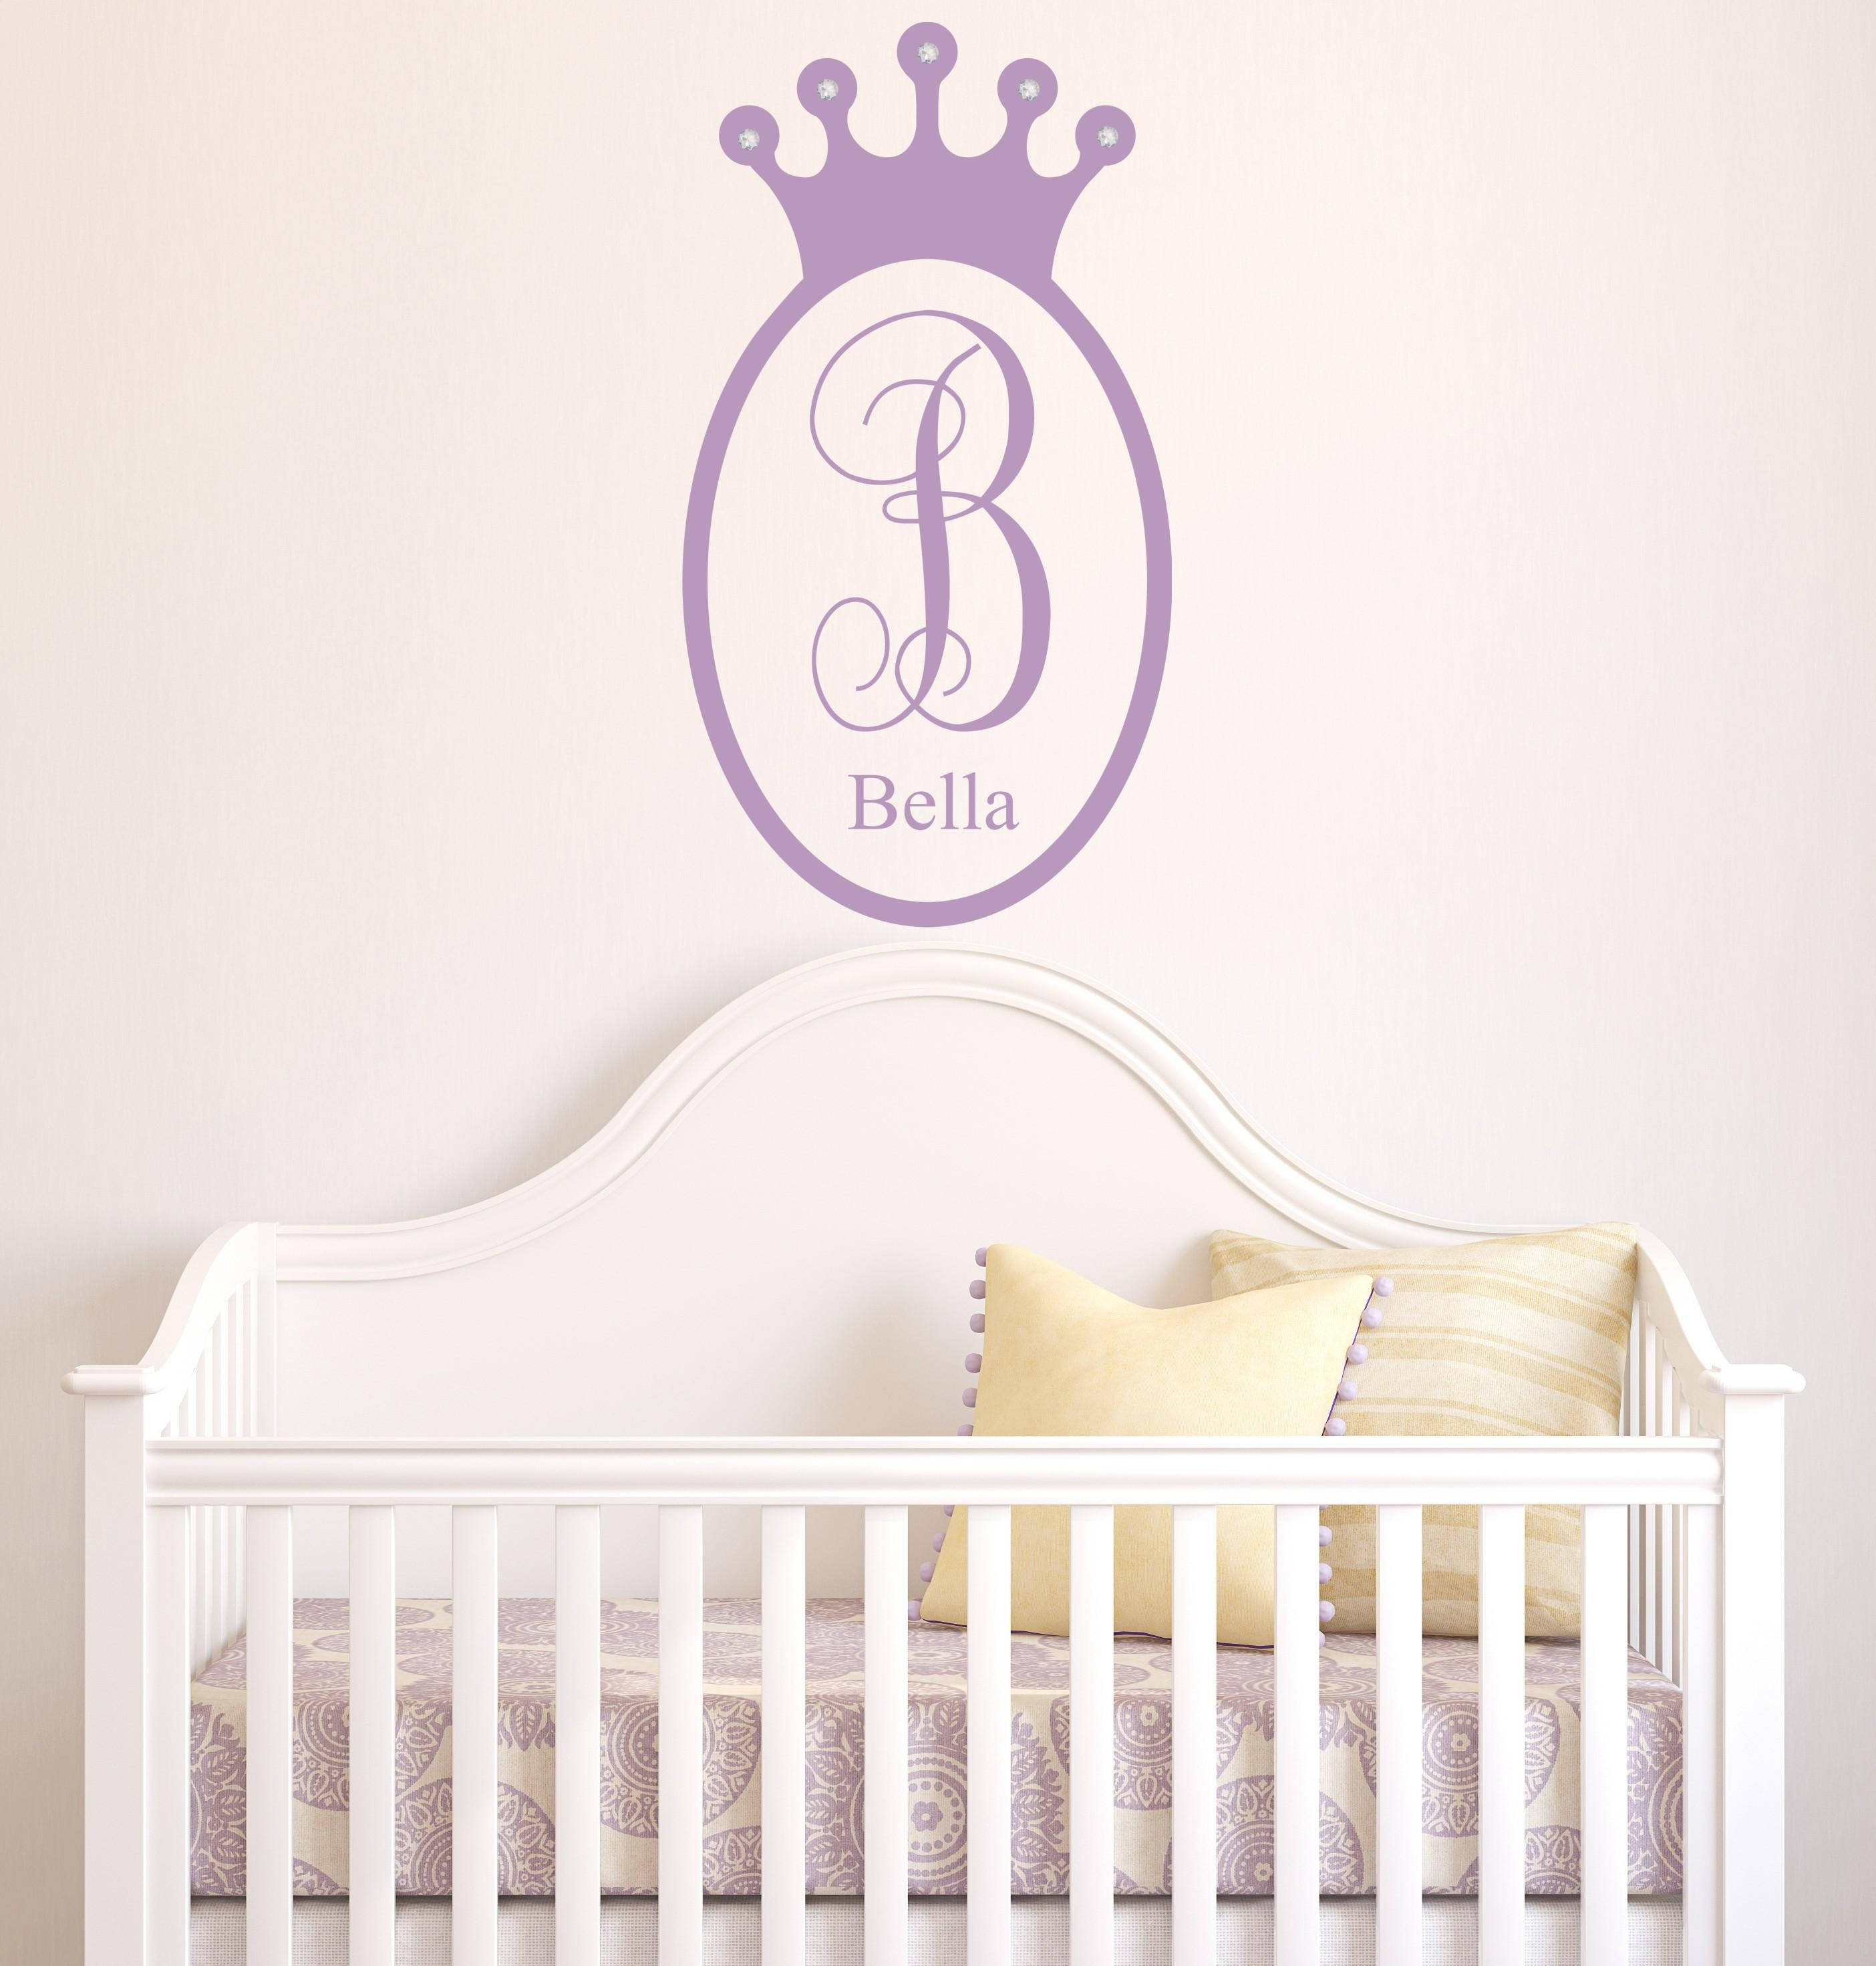 Crown Wall Decal, Princess Decor Wall Sticker For Princess Crown Wall Art (Image 8 of 20)